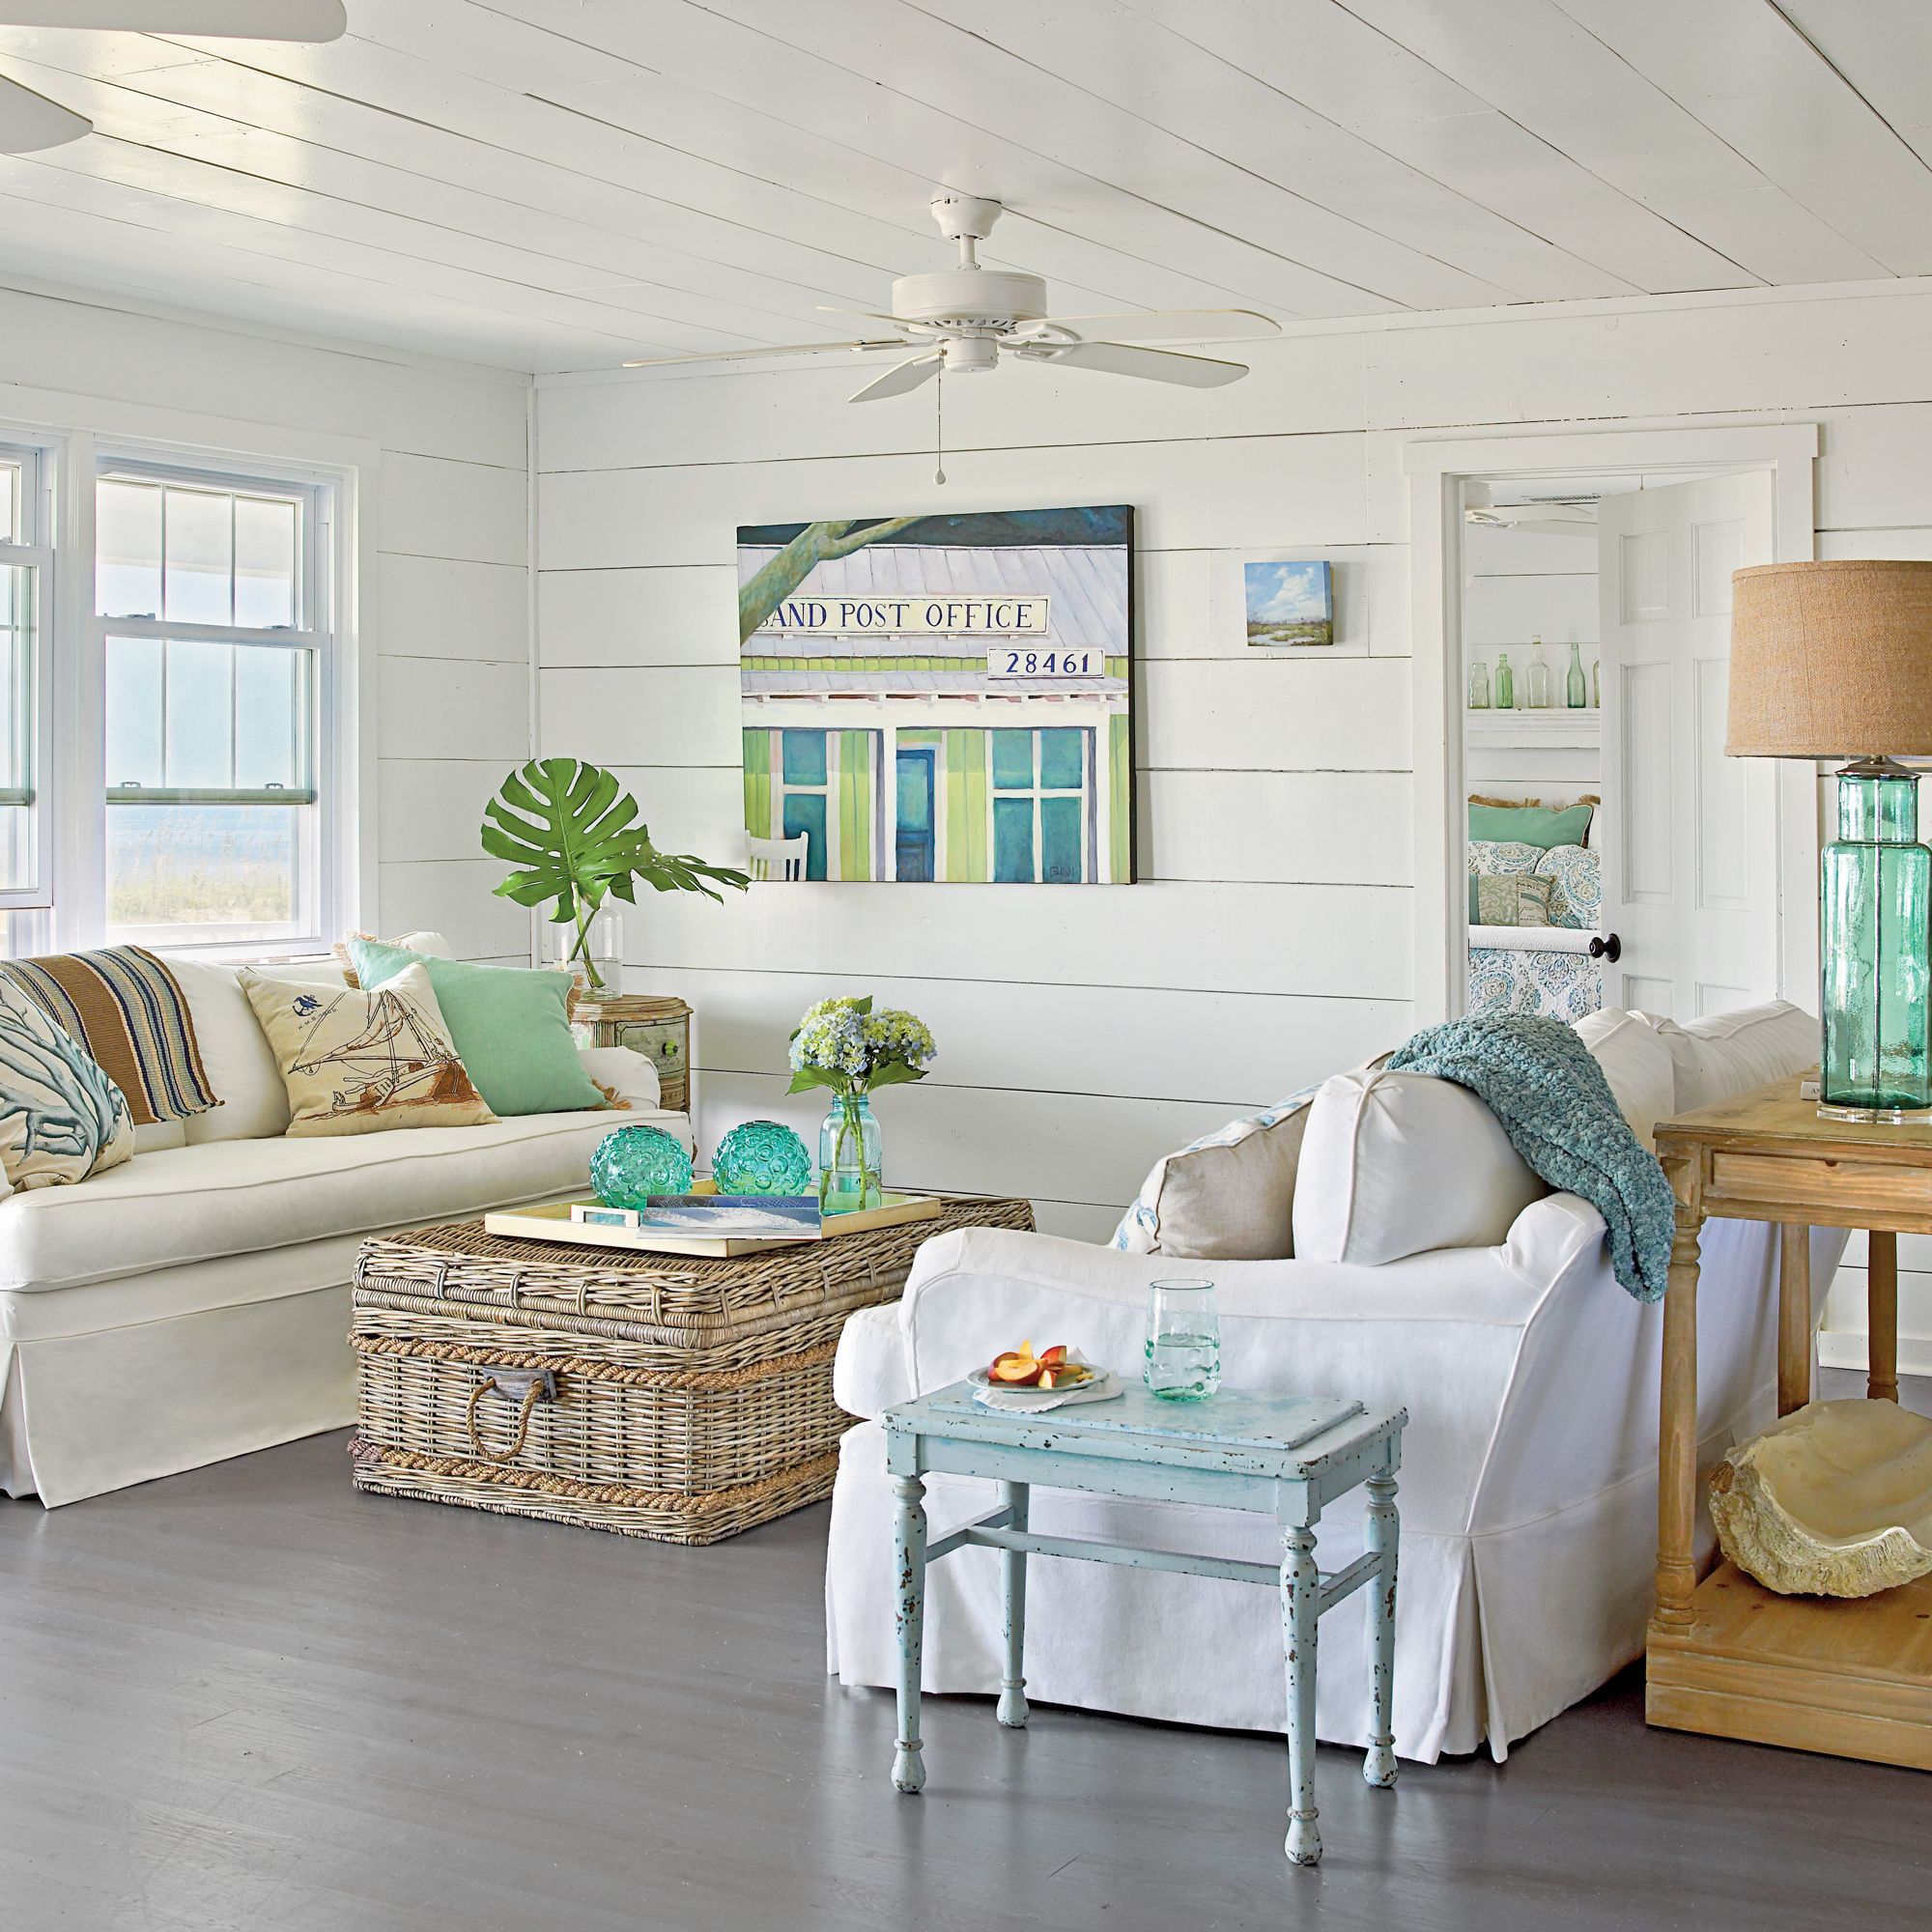 15 Spring Decorating Ideas | Bald head island, Bald heads and ...